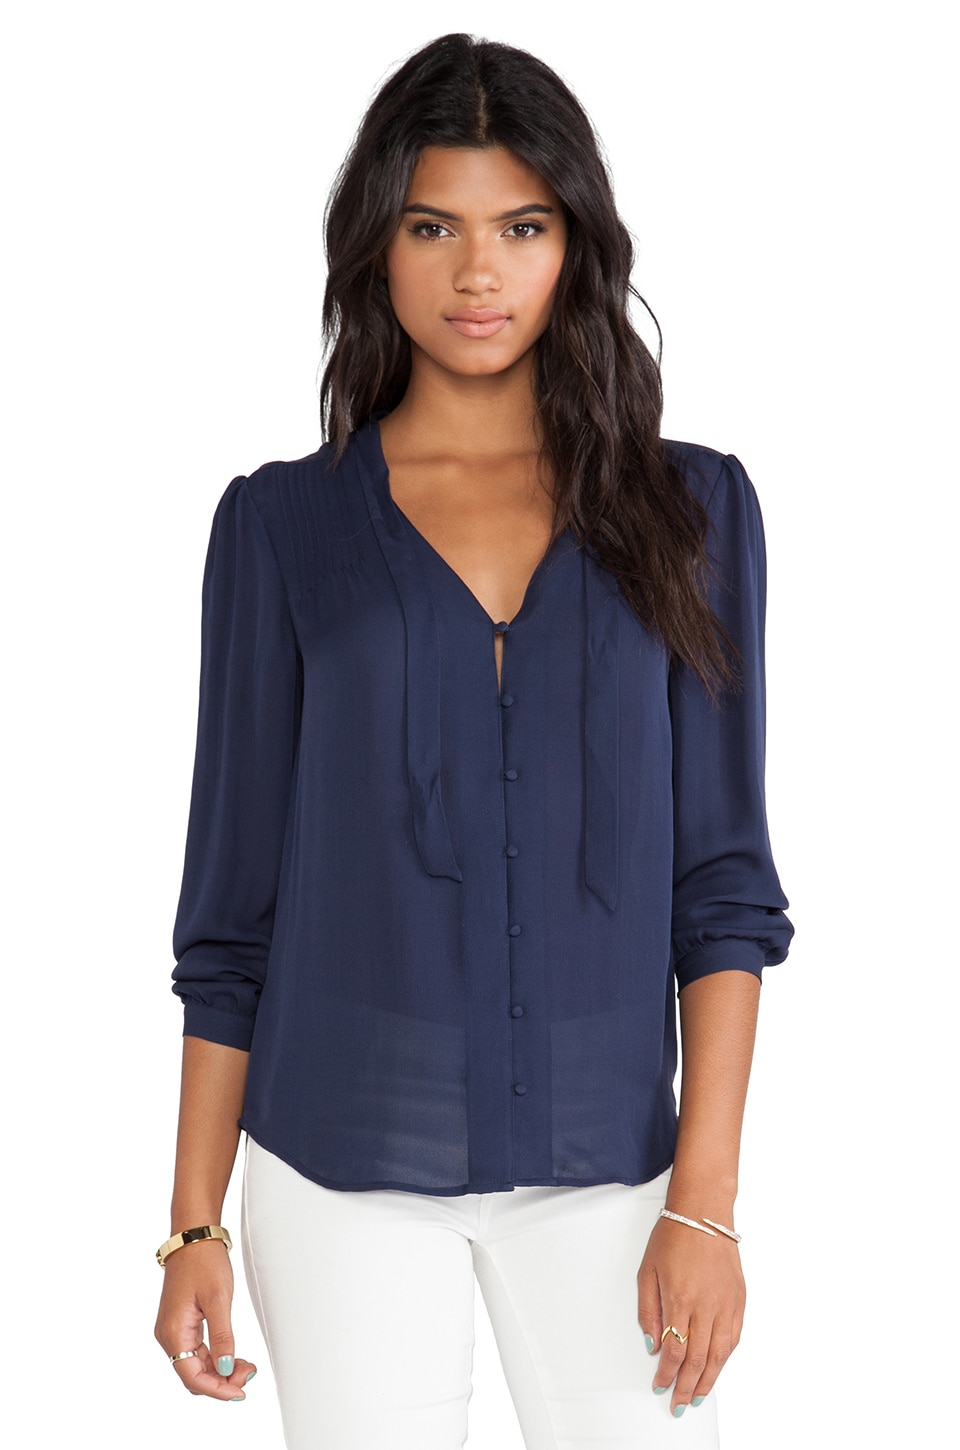 Joie Clarisse Blouse in Dark Navy